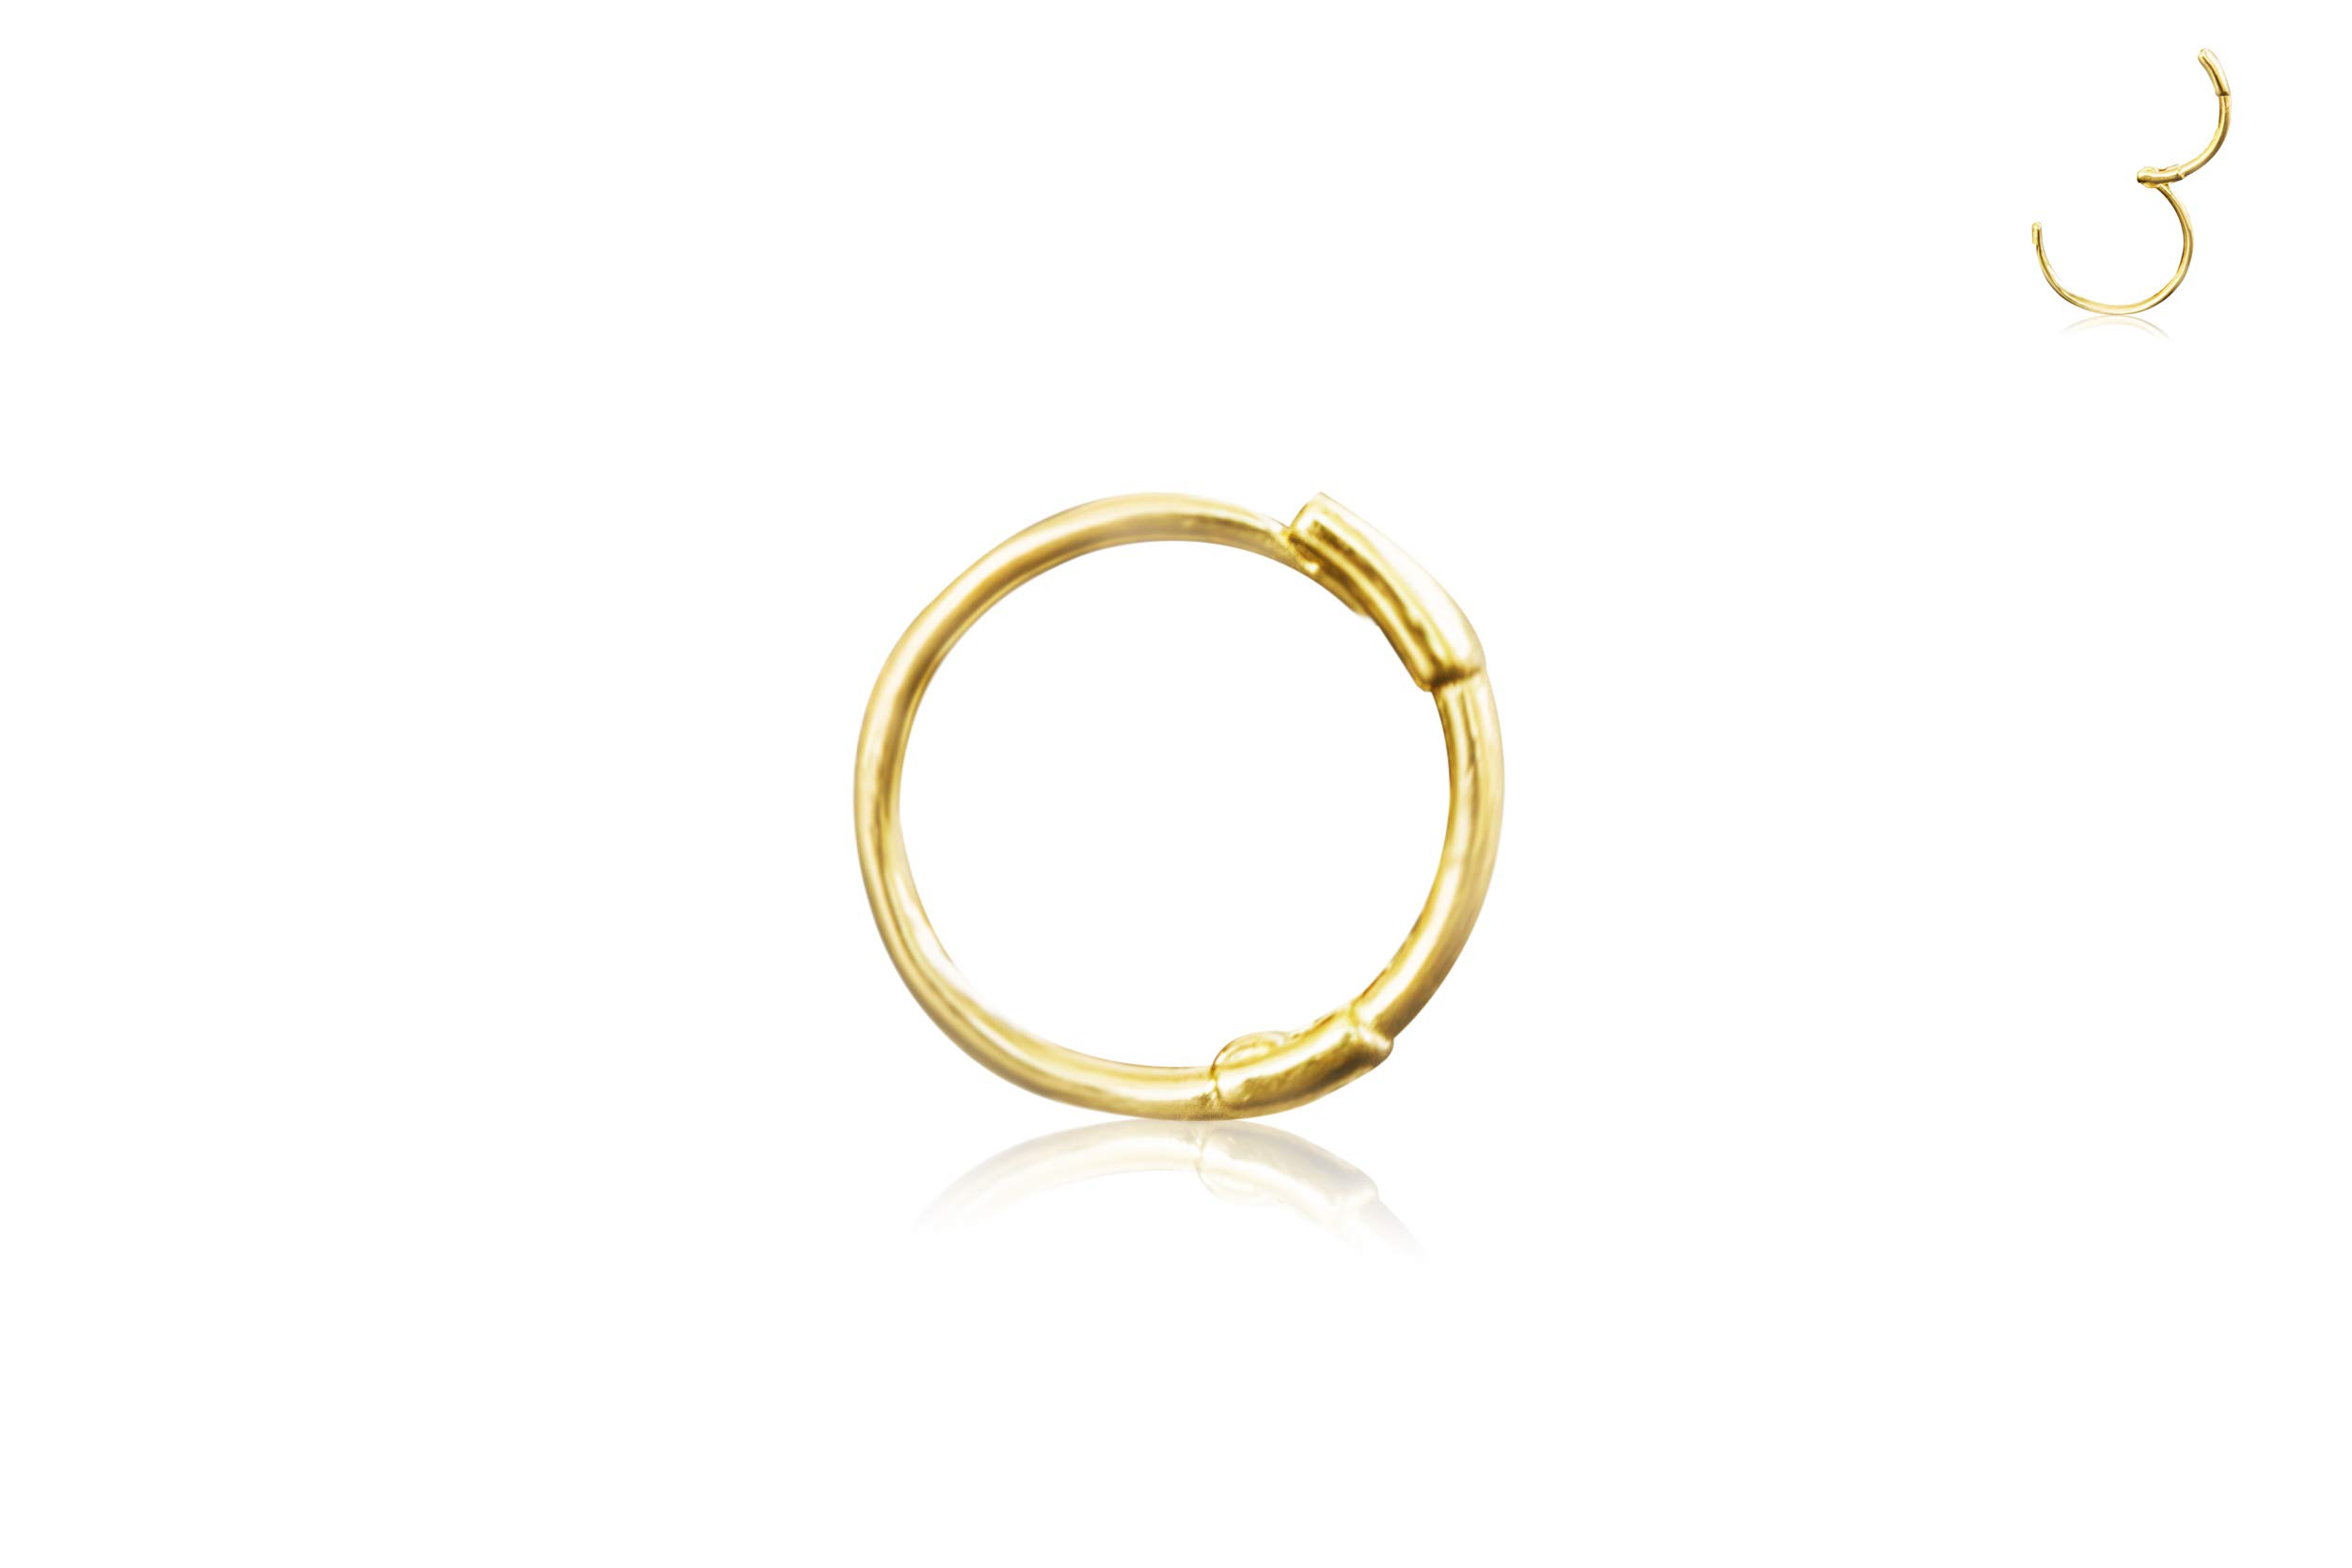 14K Solid Gold Jewelry 4mm Open Round Circle Tragus Cartilage Snug Inner Outer Conch Daith Helix Ear Segment Clicker Huggie Hoop Ring Piercing Earring For Women by ONDAISY